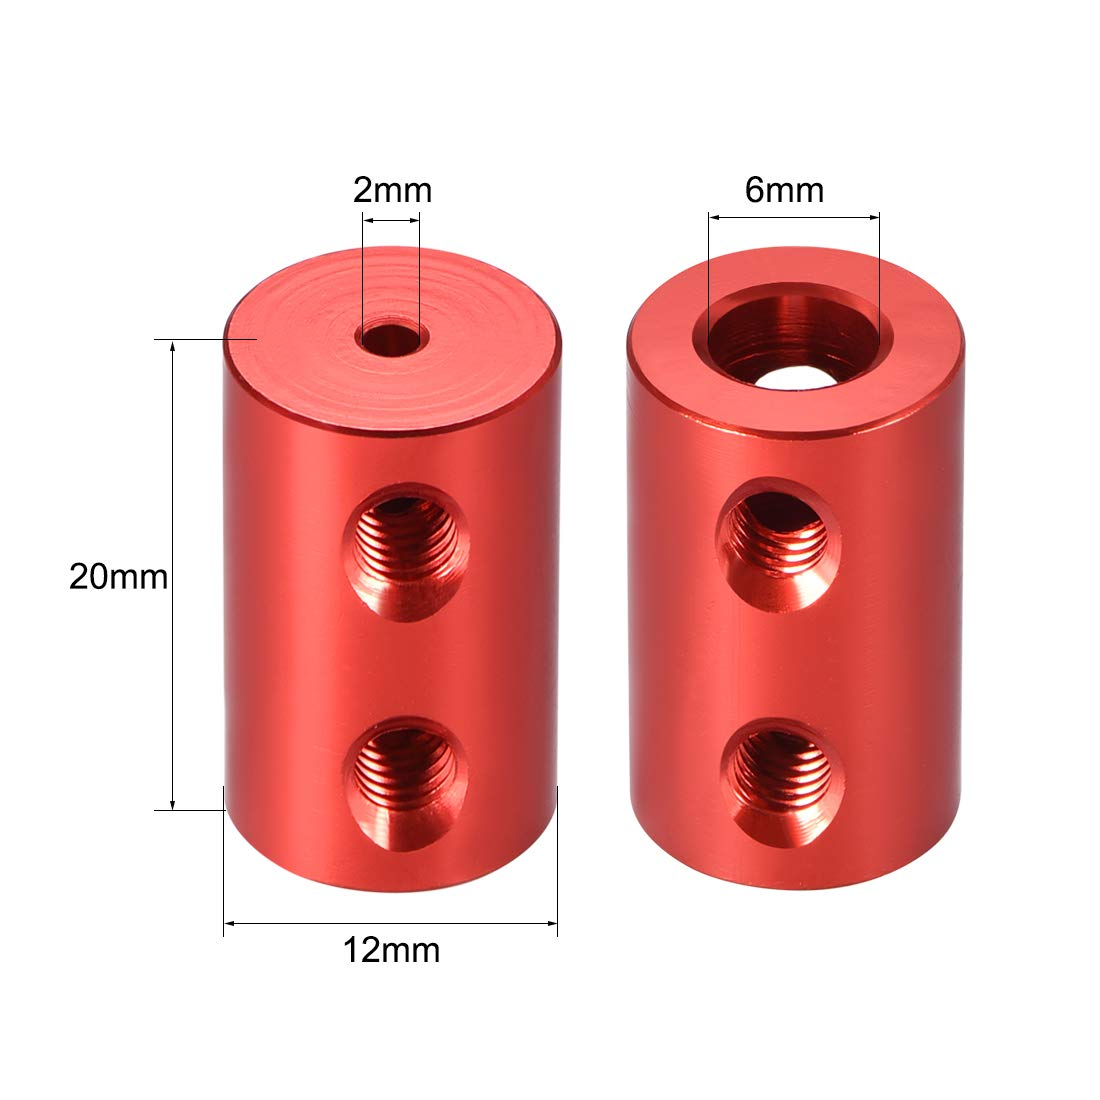 Shaft Coupling 2-6mm to 2-6mm Bore L20xD12 Robot Motor Wheel Rigid Coupler Red